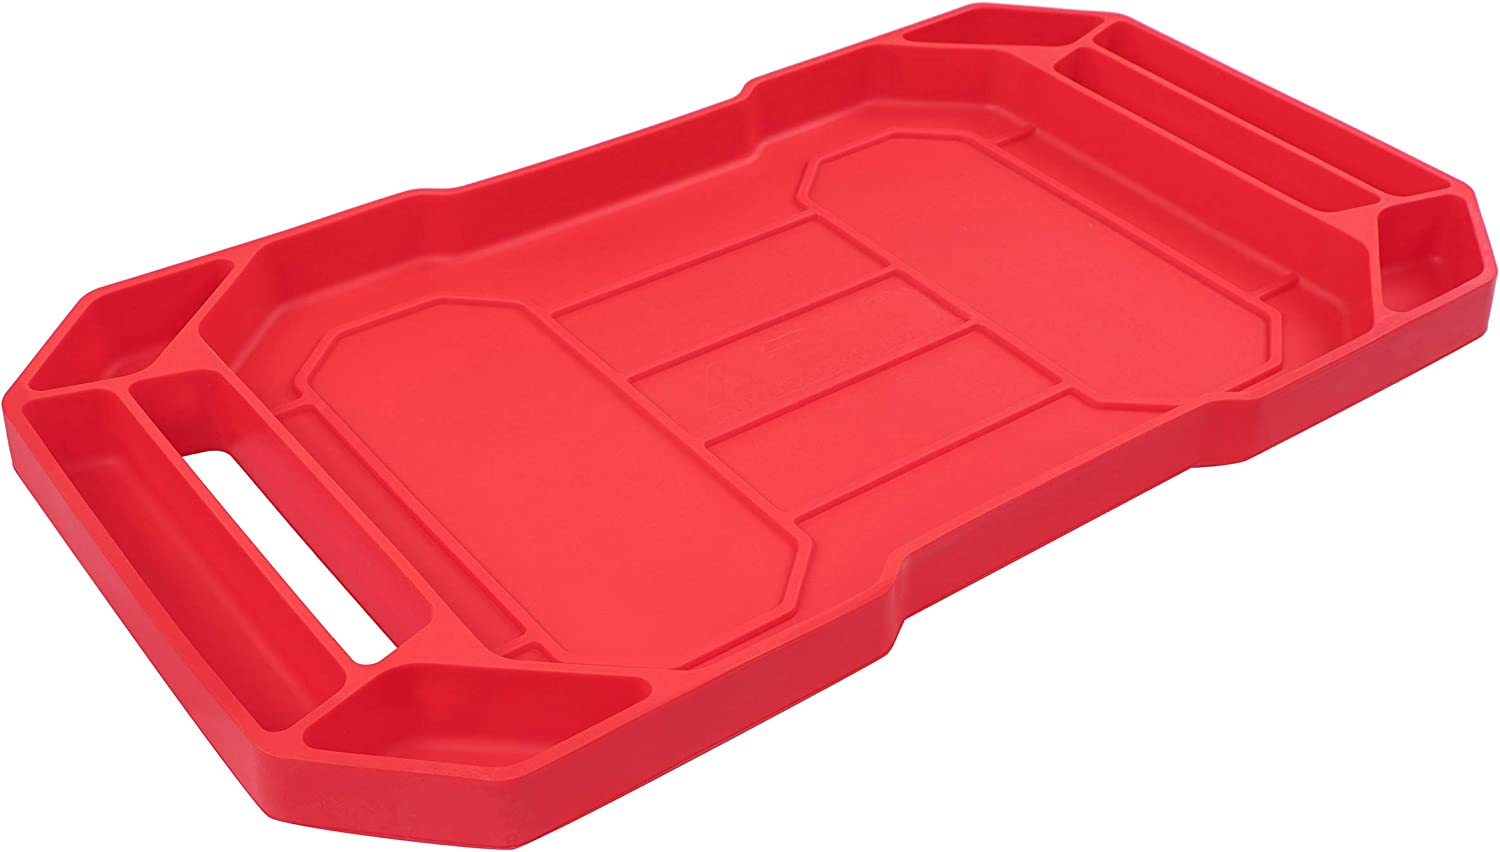 Non Slip Tool Holder Tray for Organizing Parts 24in x 14in ABN Flexible Tool Tray Silicone Rubber Tools Organizer